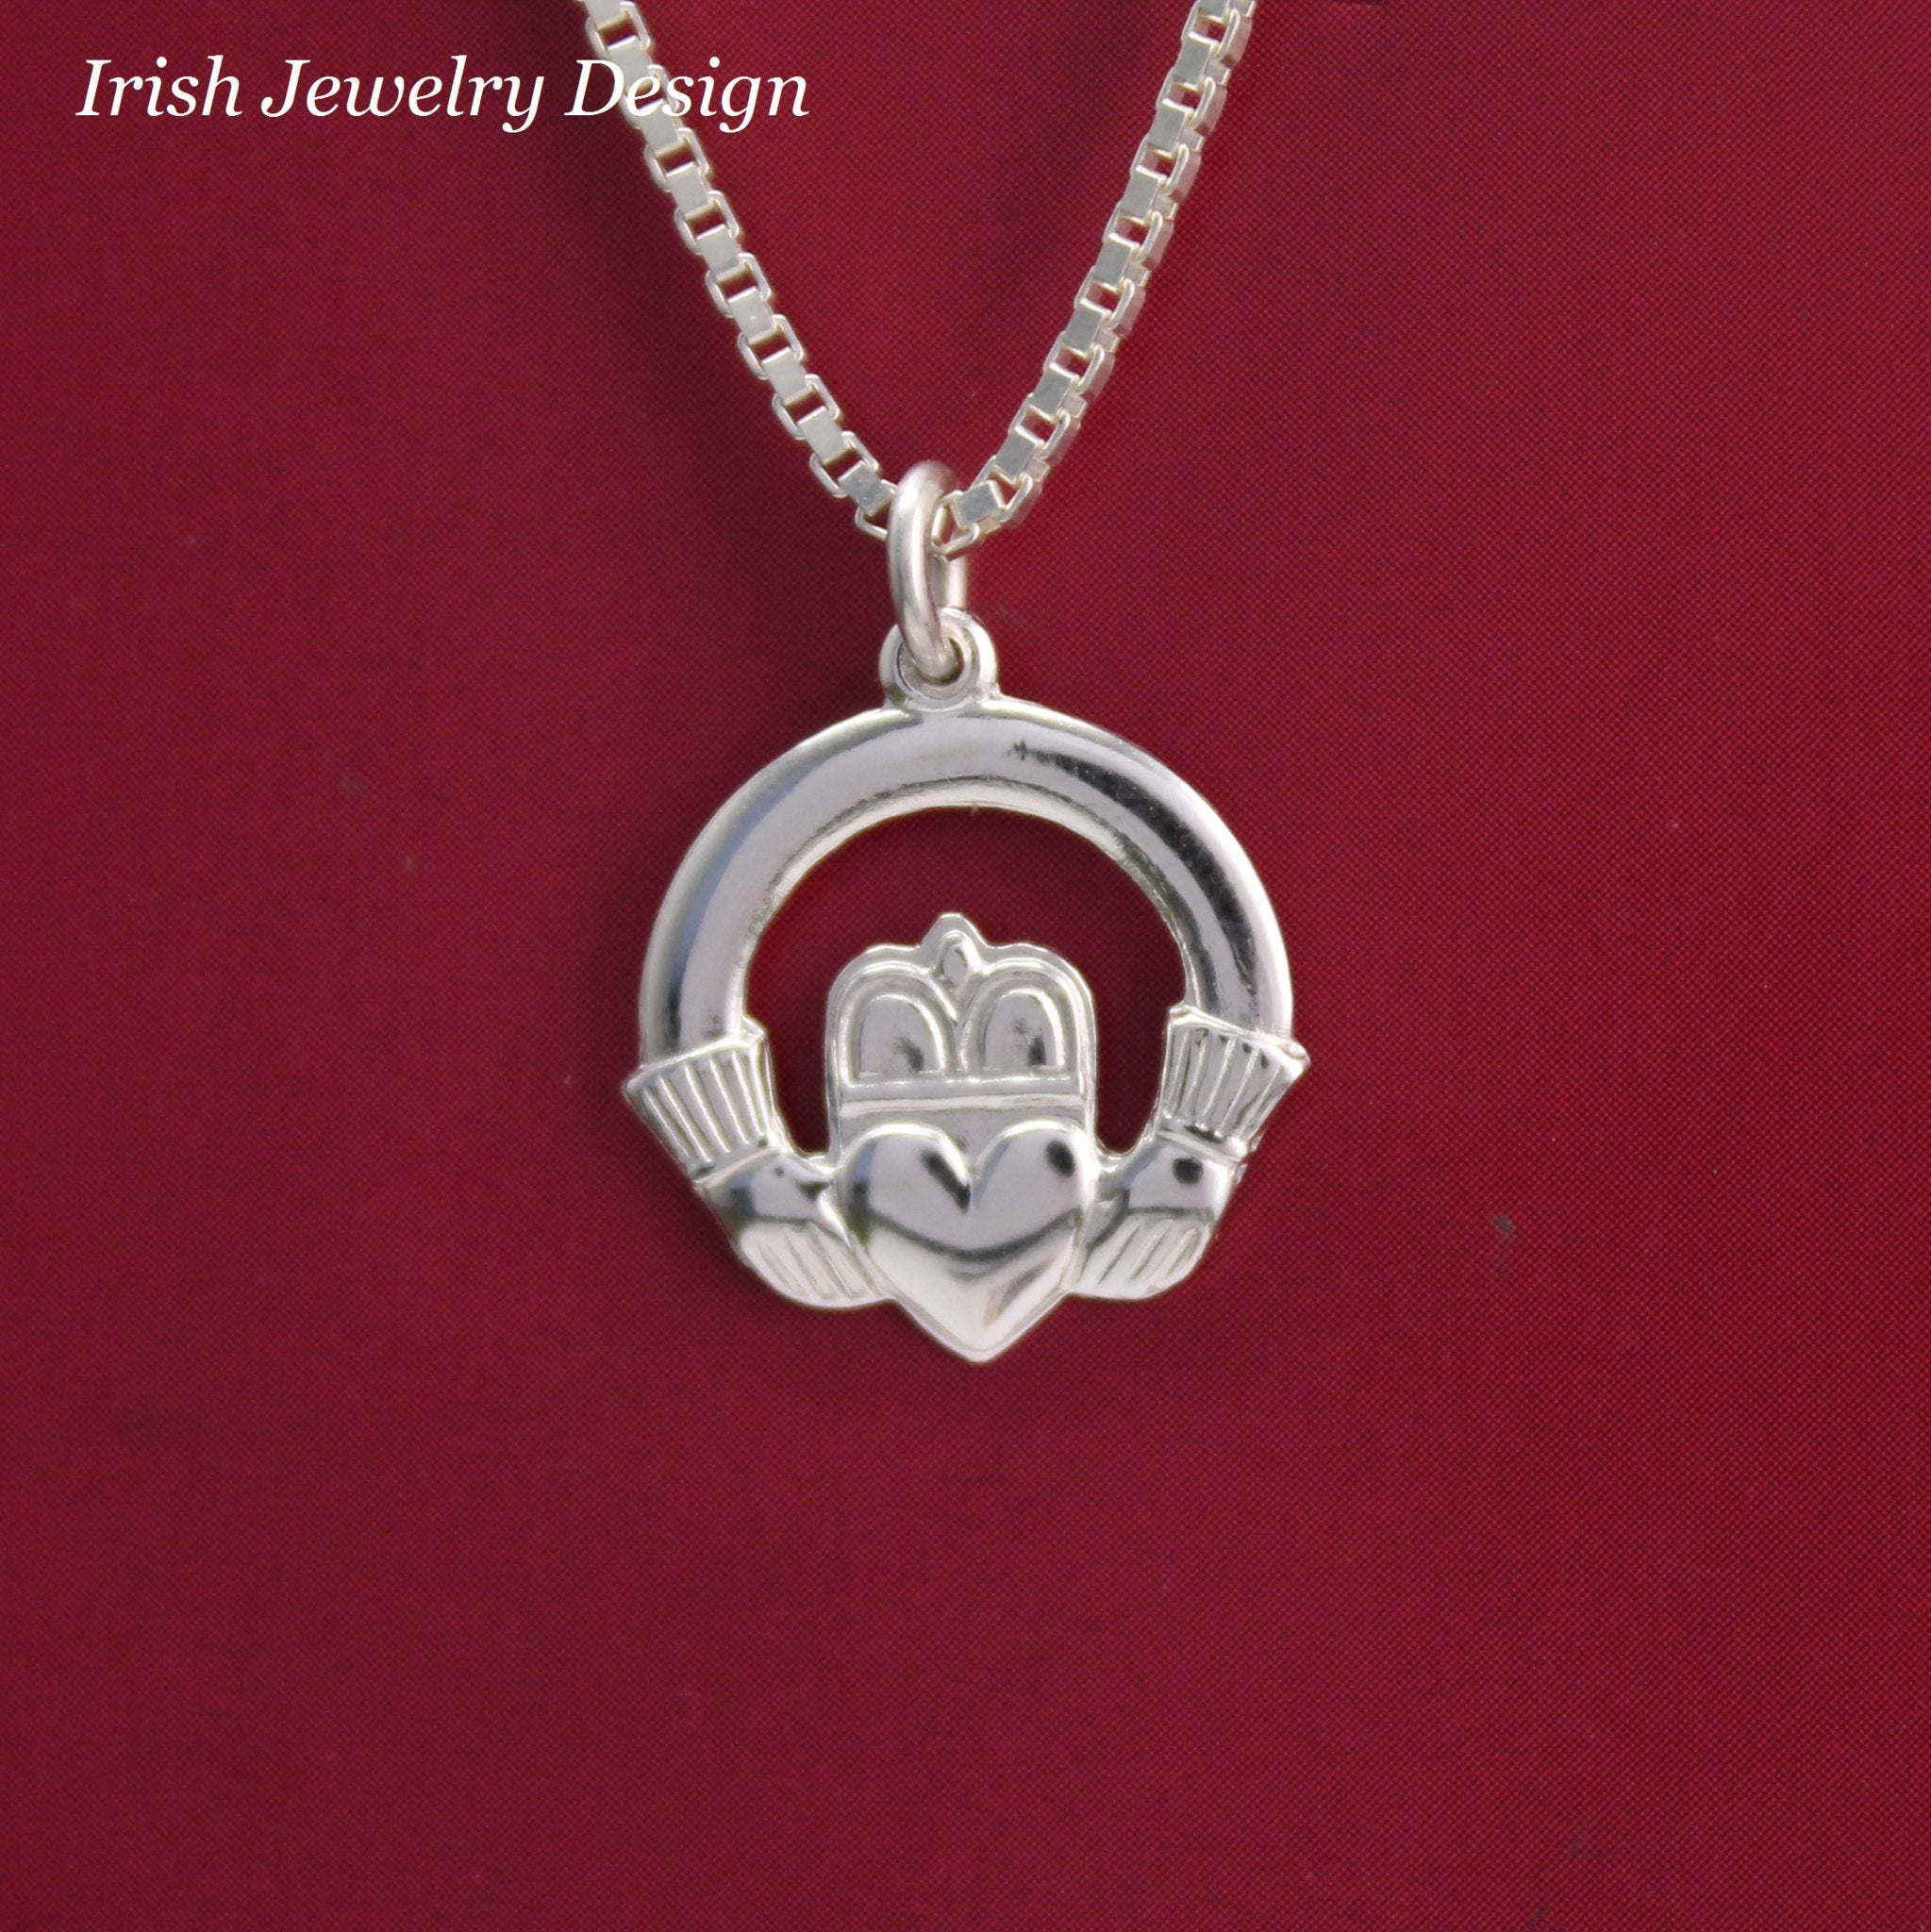 jewelry pendant ireland arnua wishbone designed model irish in made celtic handcrafted jewellery newgrange